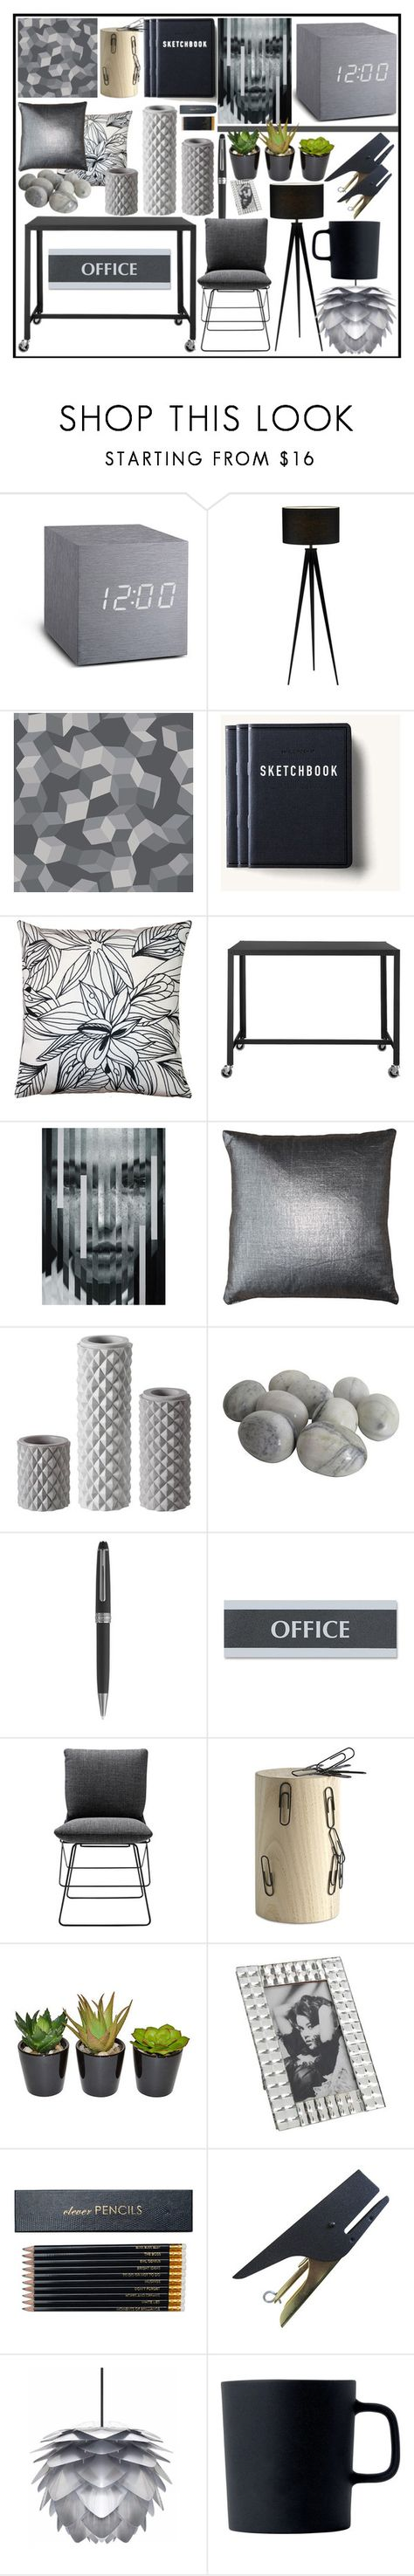 """Untitled #662"" by atarituesday ❤ liked on Polyvore featuring interior, interiors, interior design, home, home decor, interior decorating, Cole & Son, Tanner Goods, Pillow Decor and CB2"